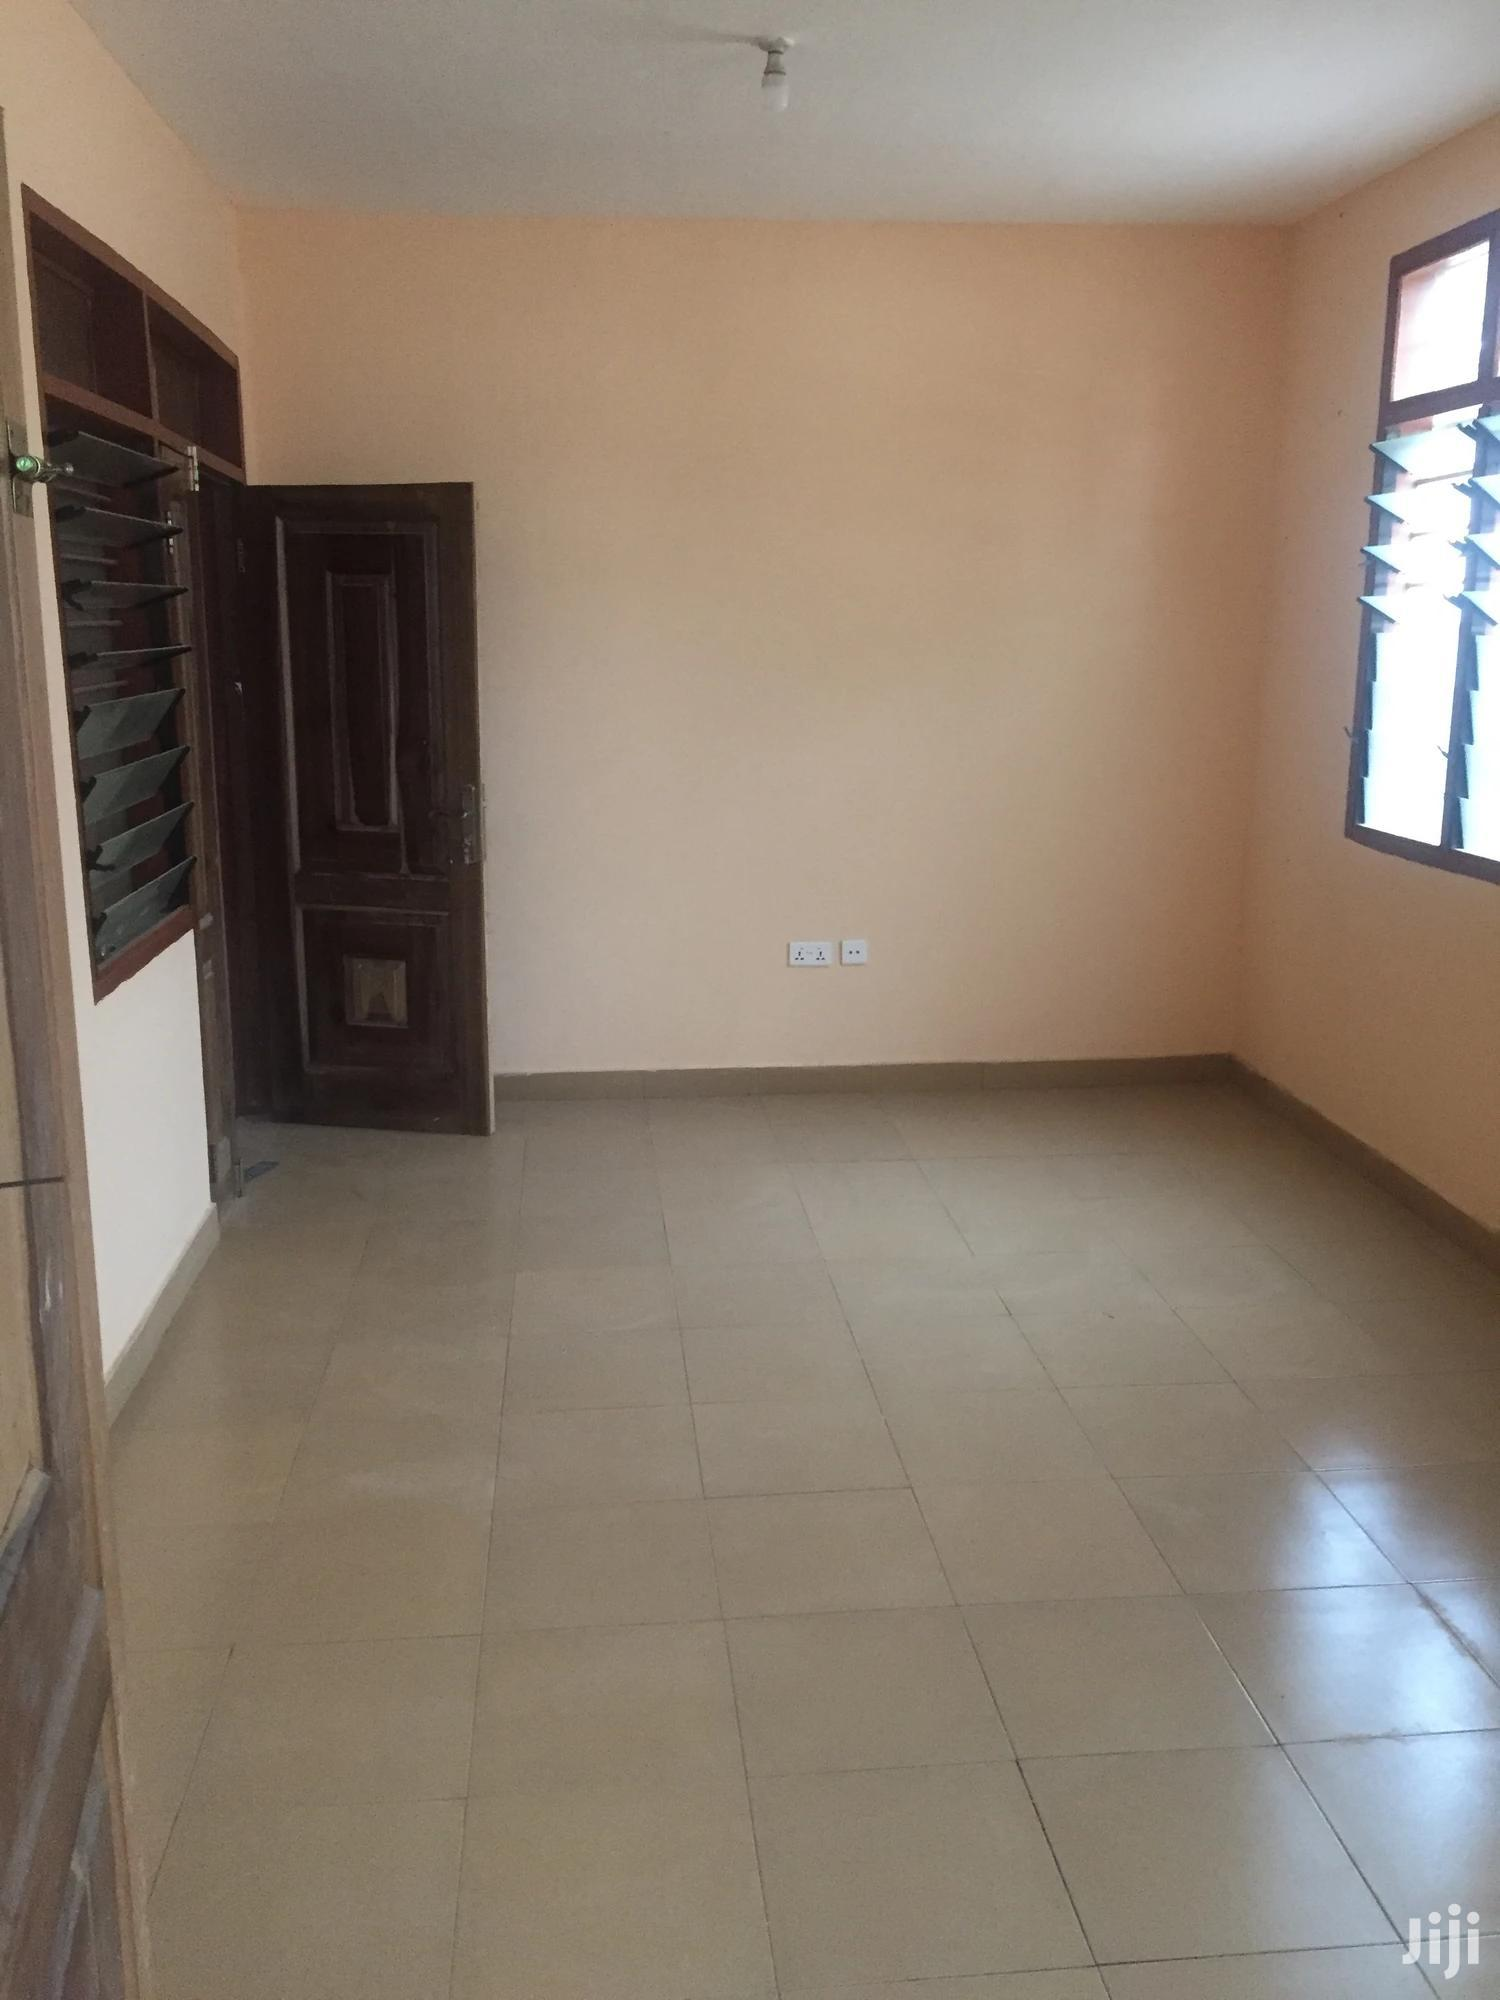 Newly Built 2bedroom Apartment In Abelemkpe. 2years